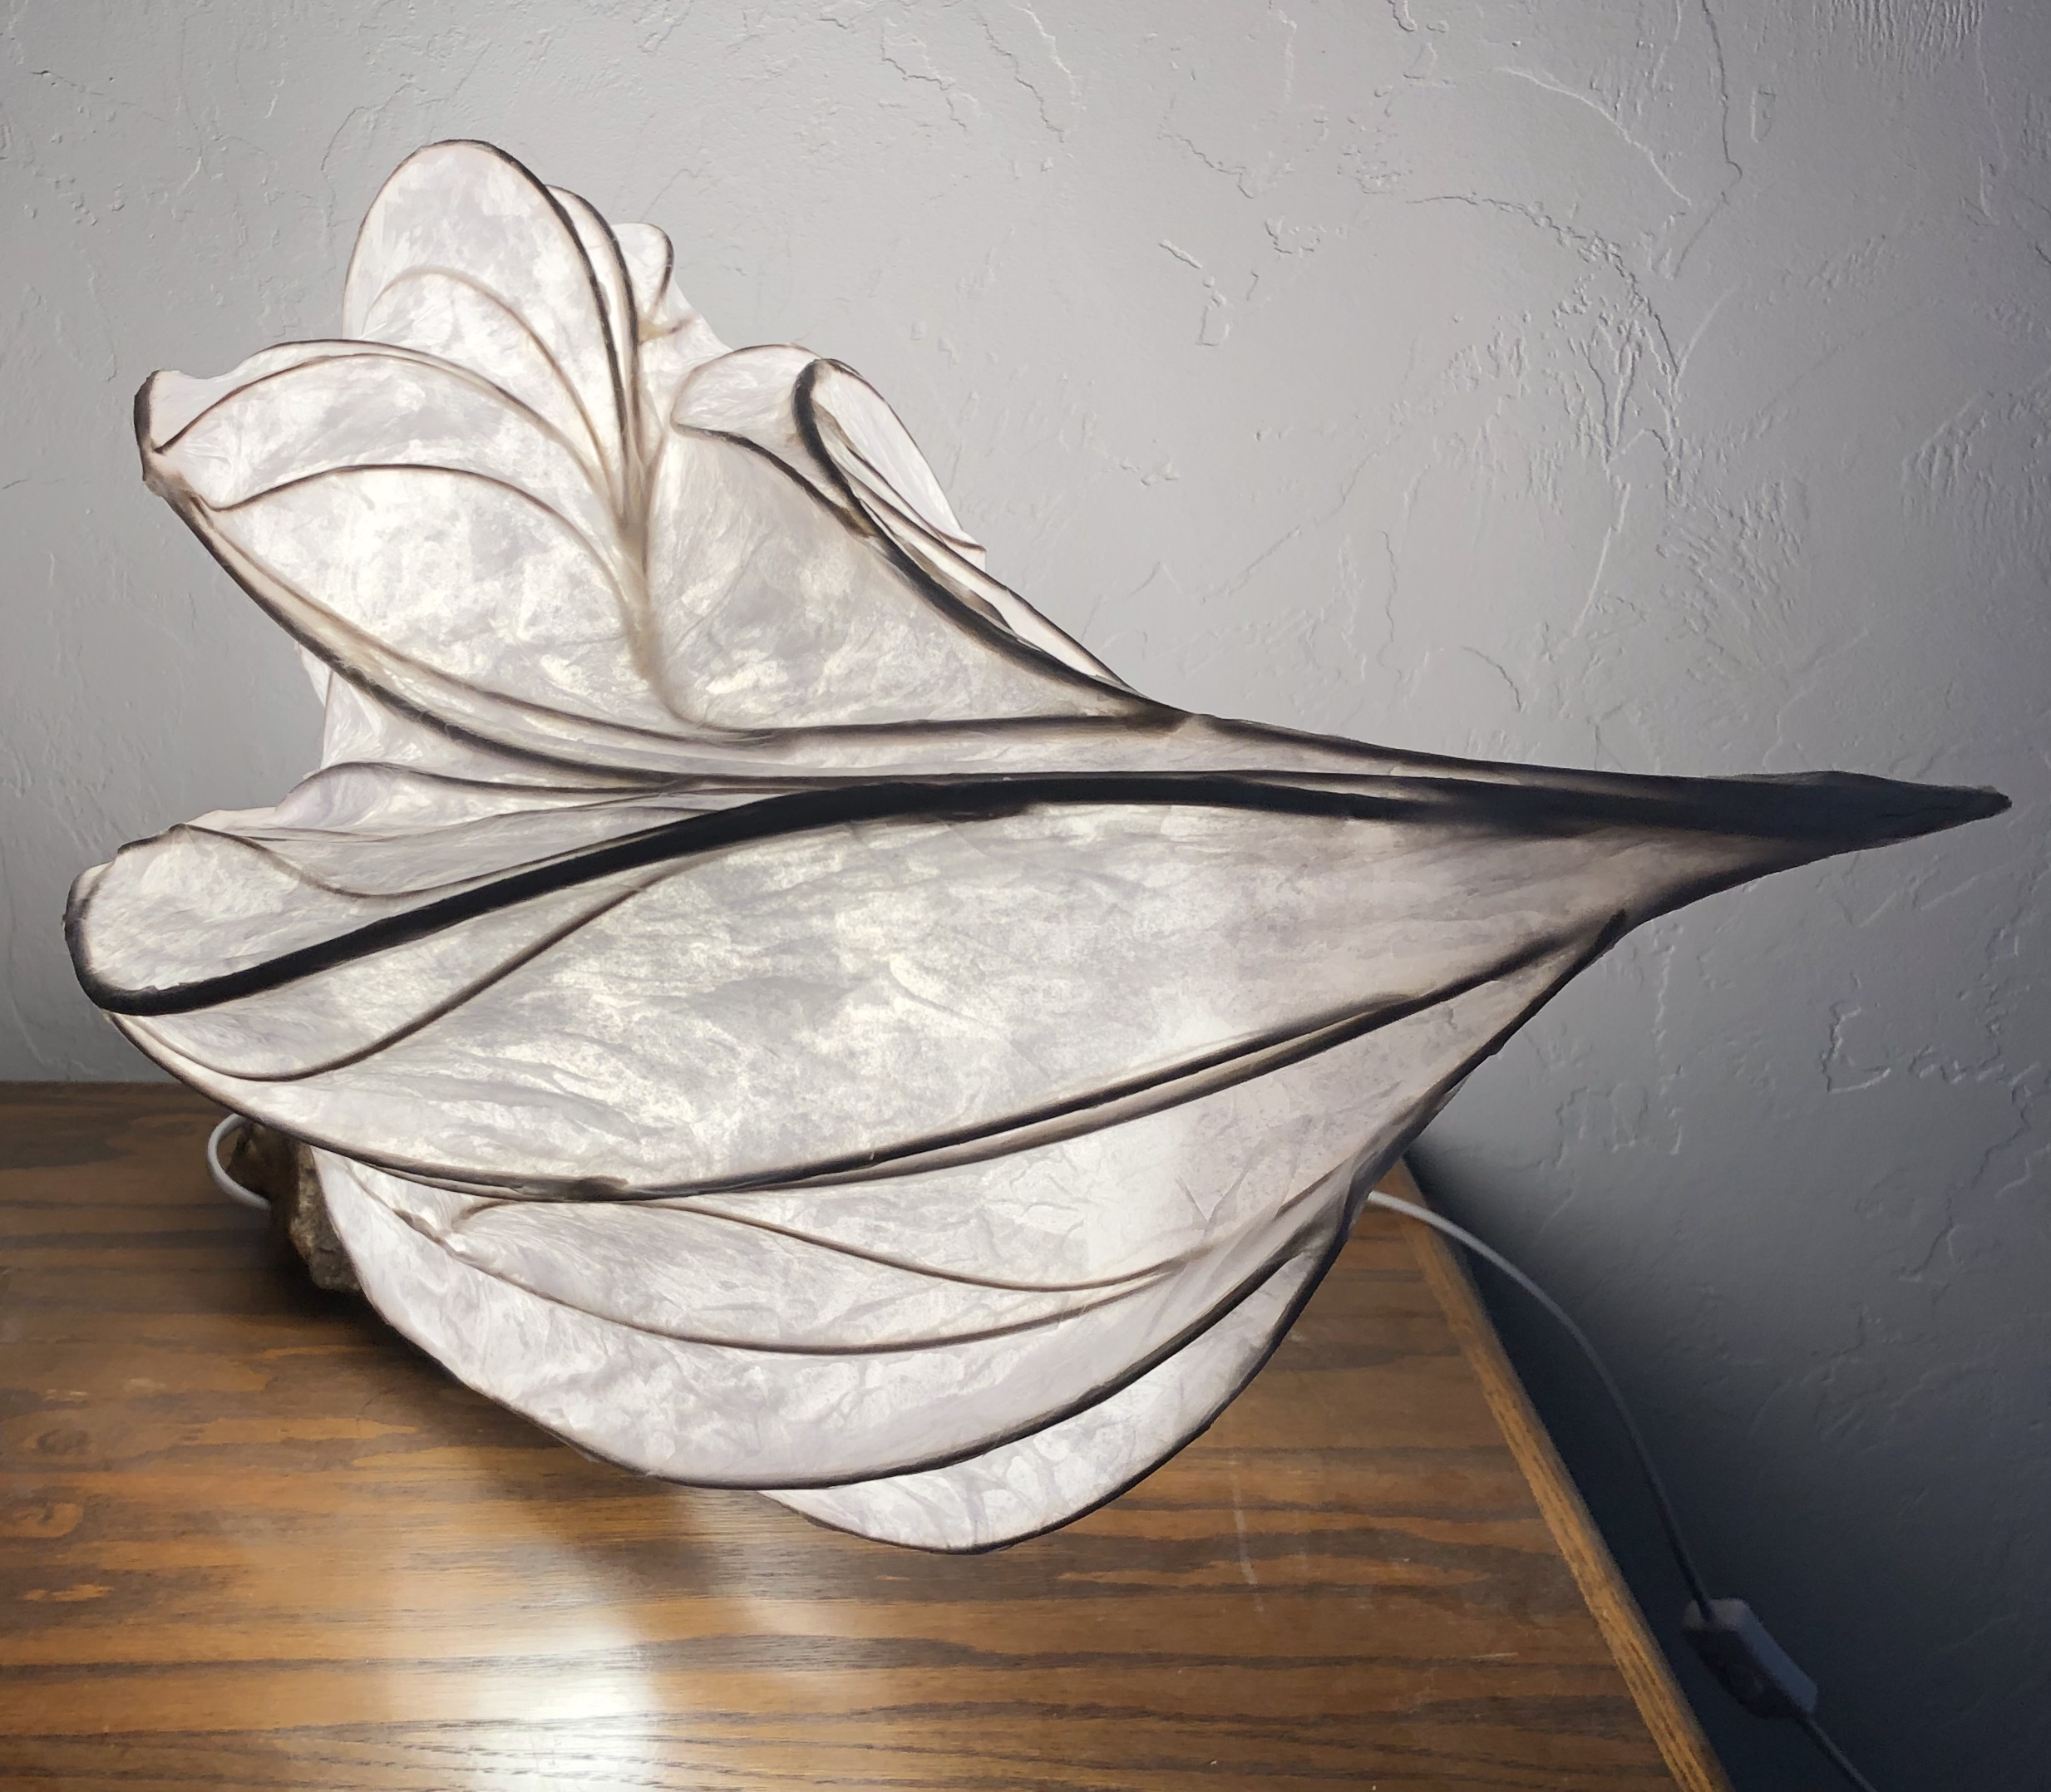 paper light sculpture with quartz crystals